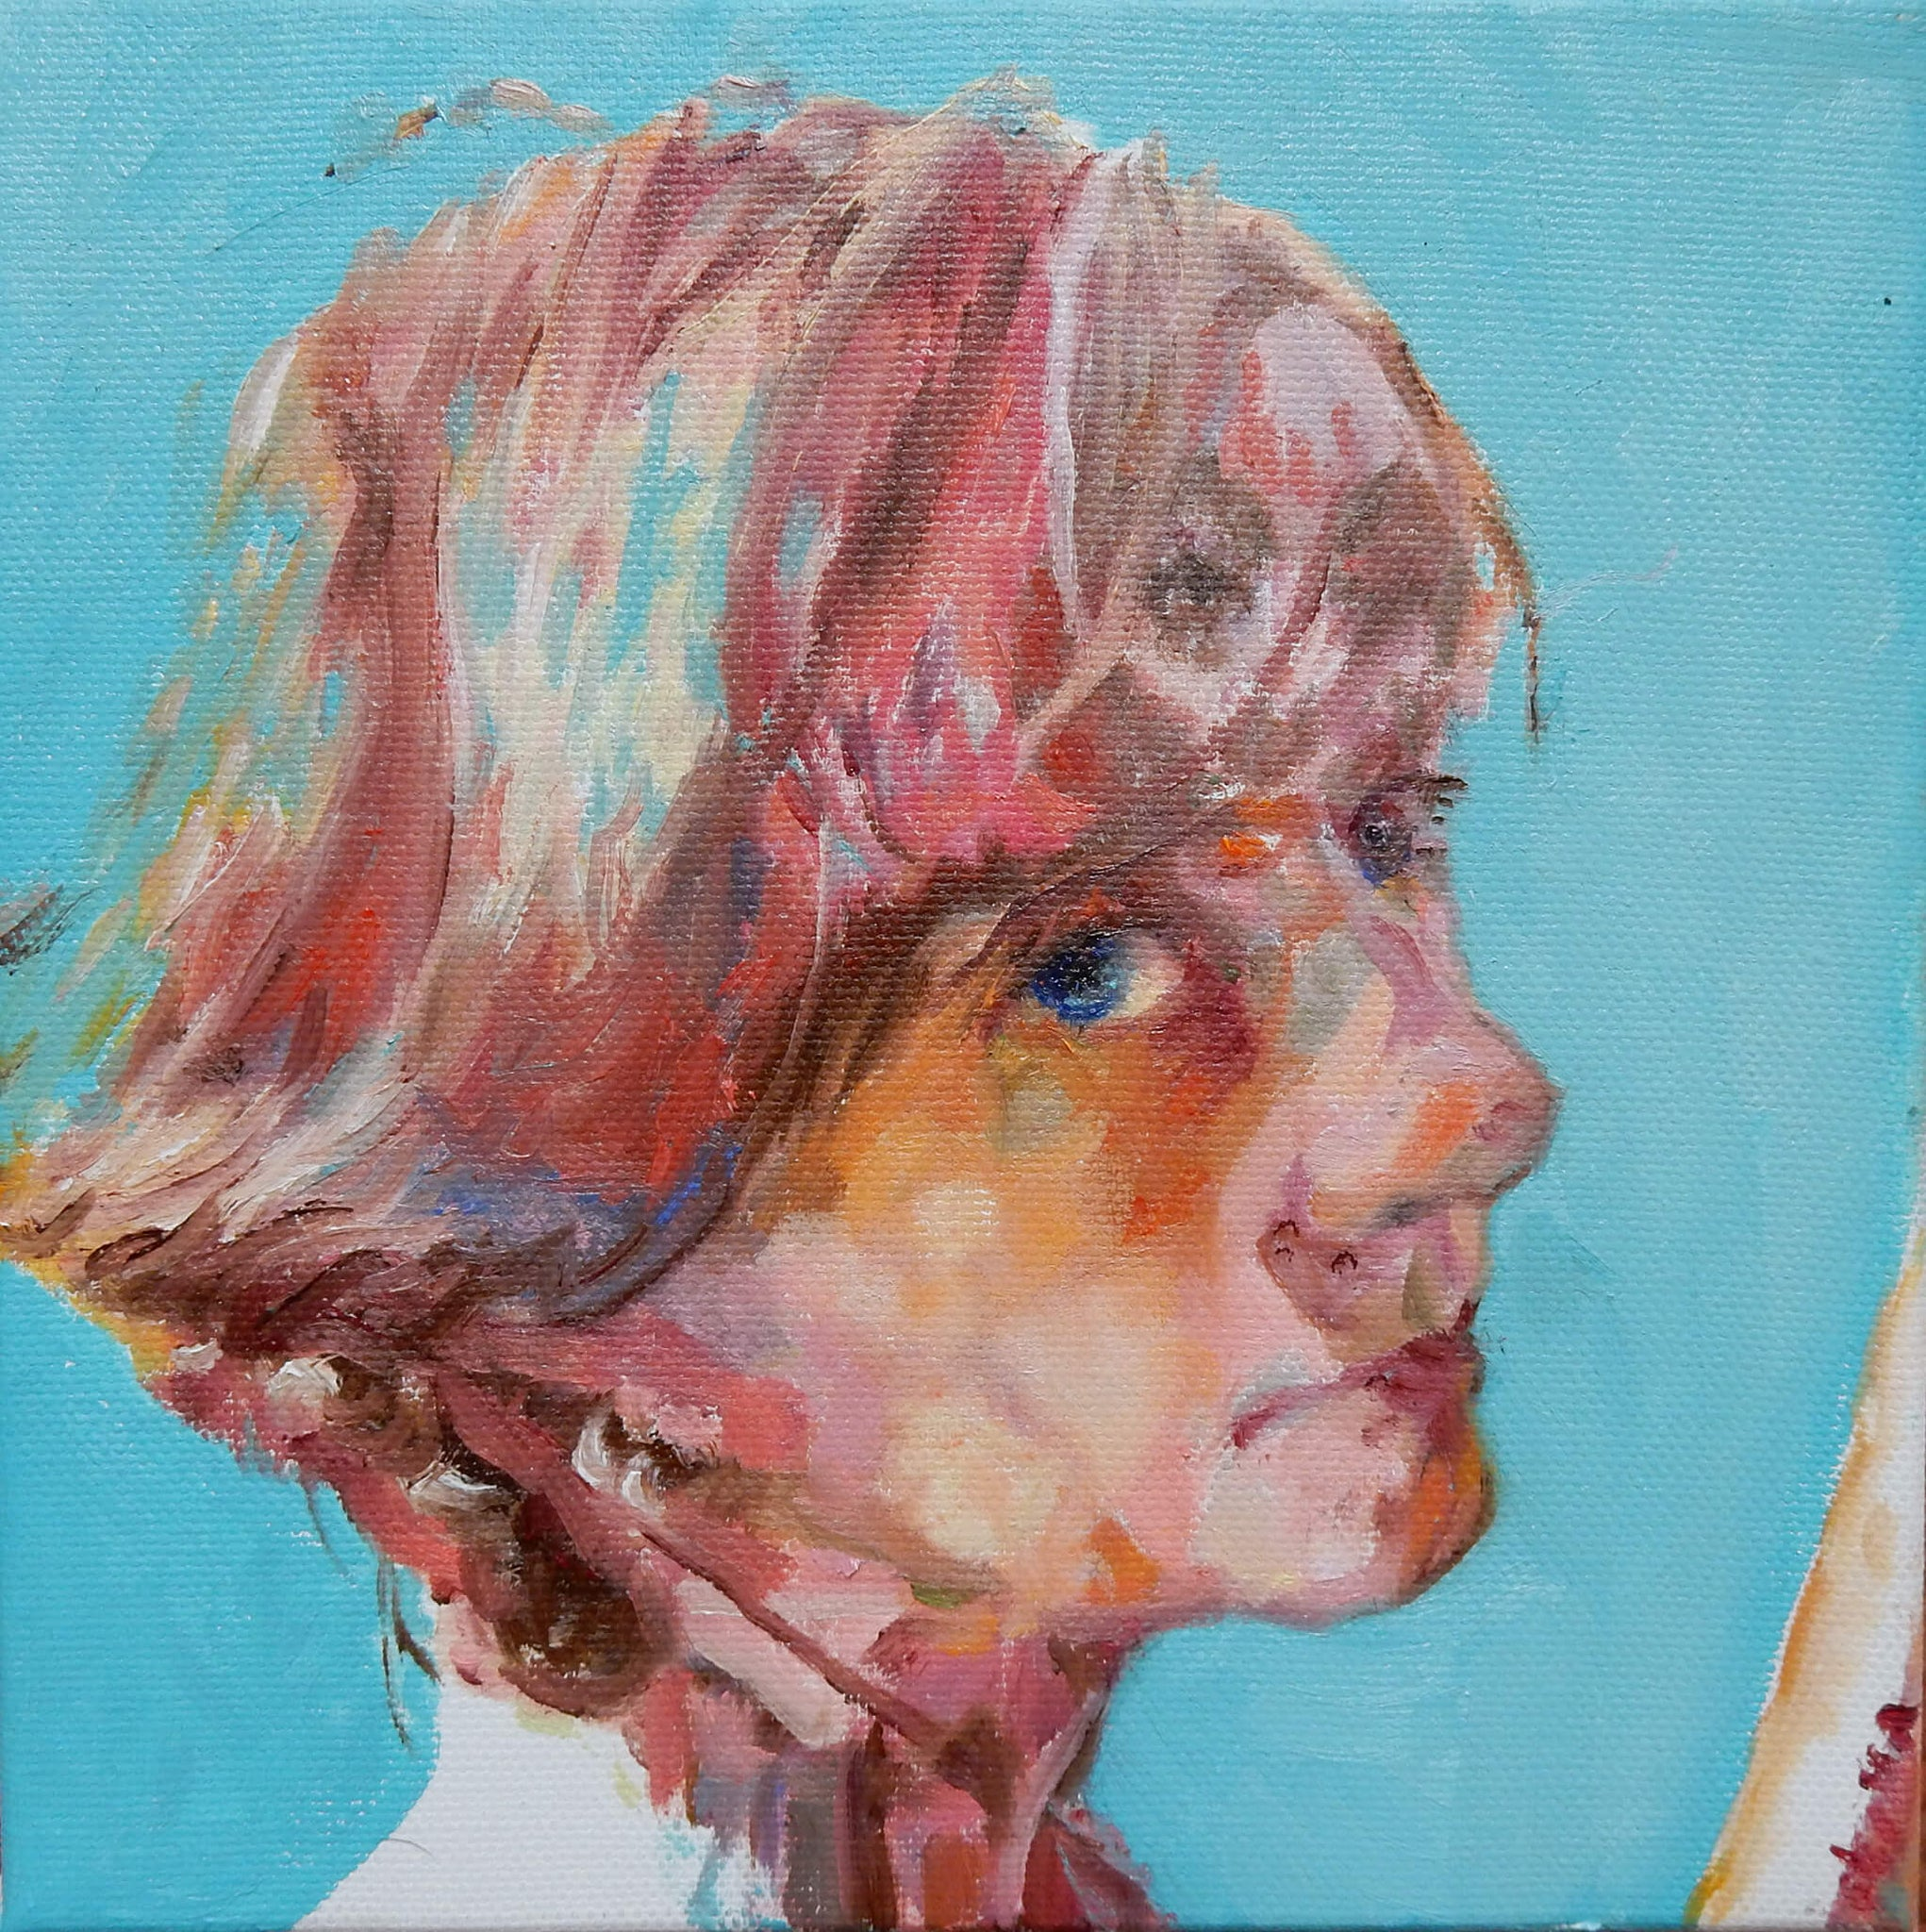 Stella Tooth self-portrait oil on canvas artwork with buskers on her mind.